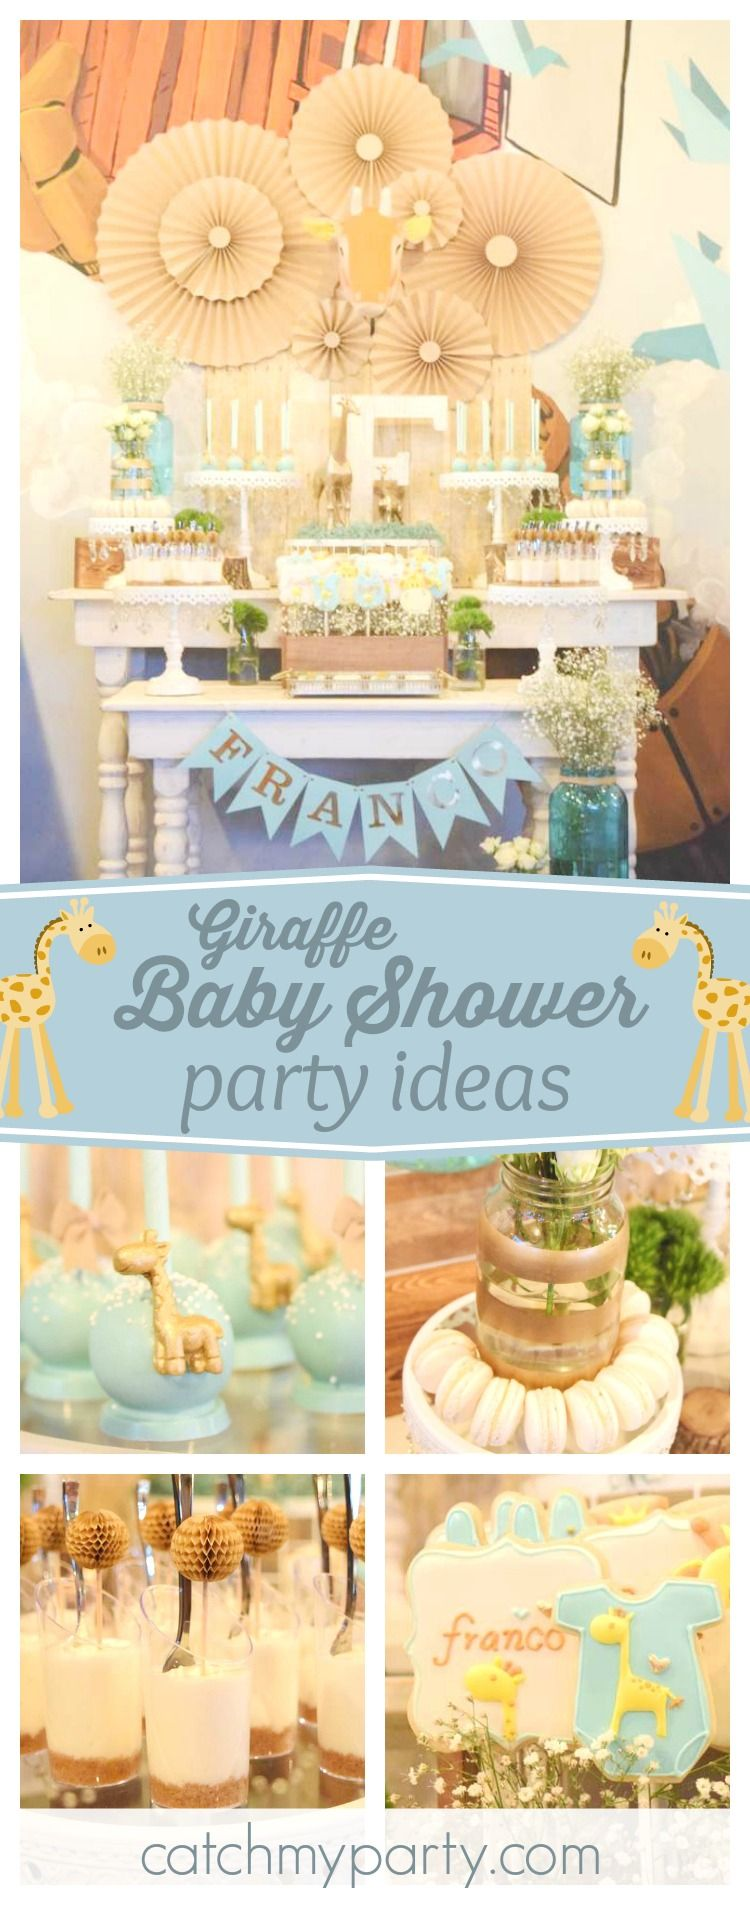 Check Out This Cute Giraffe Themed Baby Shower. The Dessert Table And Sweet  Treats Are Adorable!! See More Party Ideas And Share Yours At  CatchMyParty.com